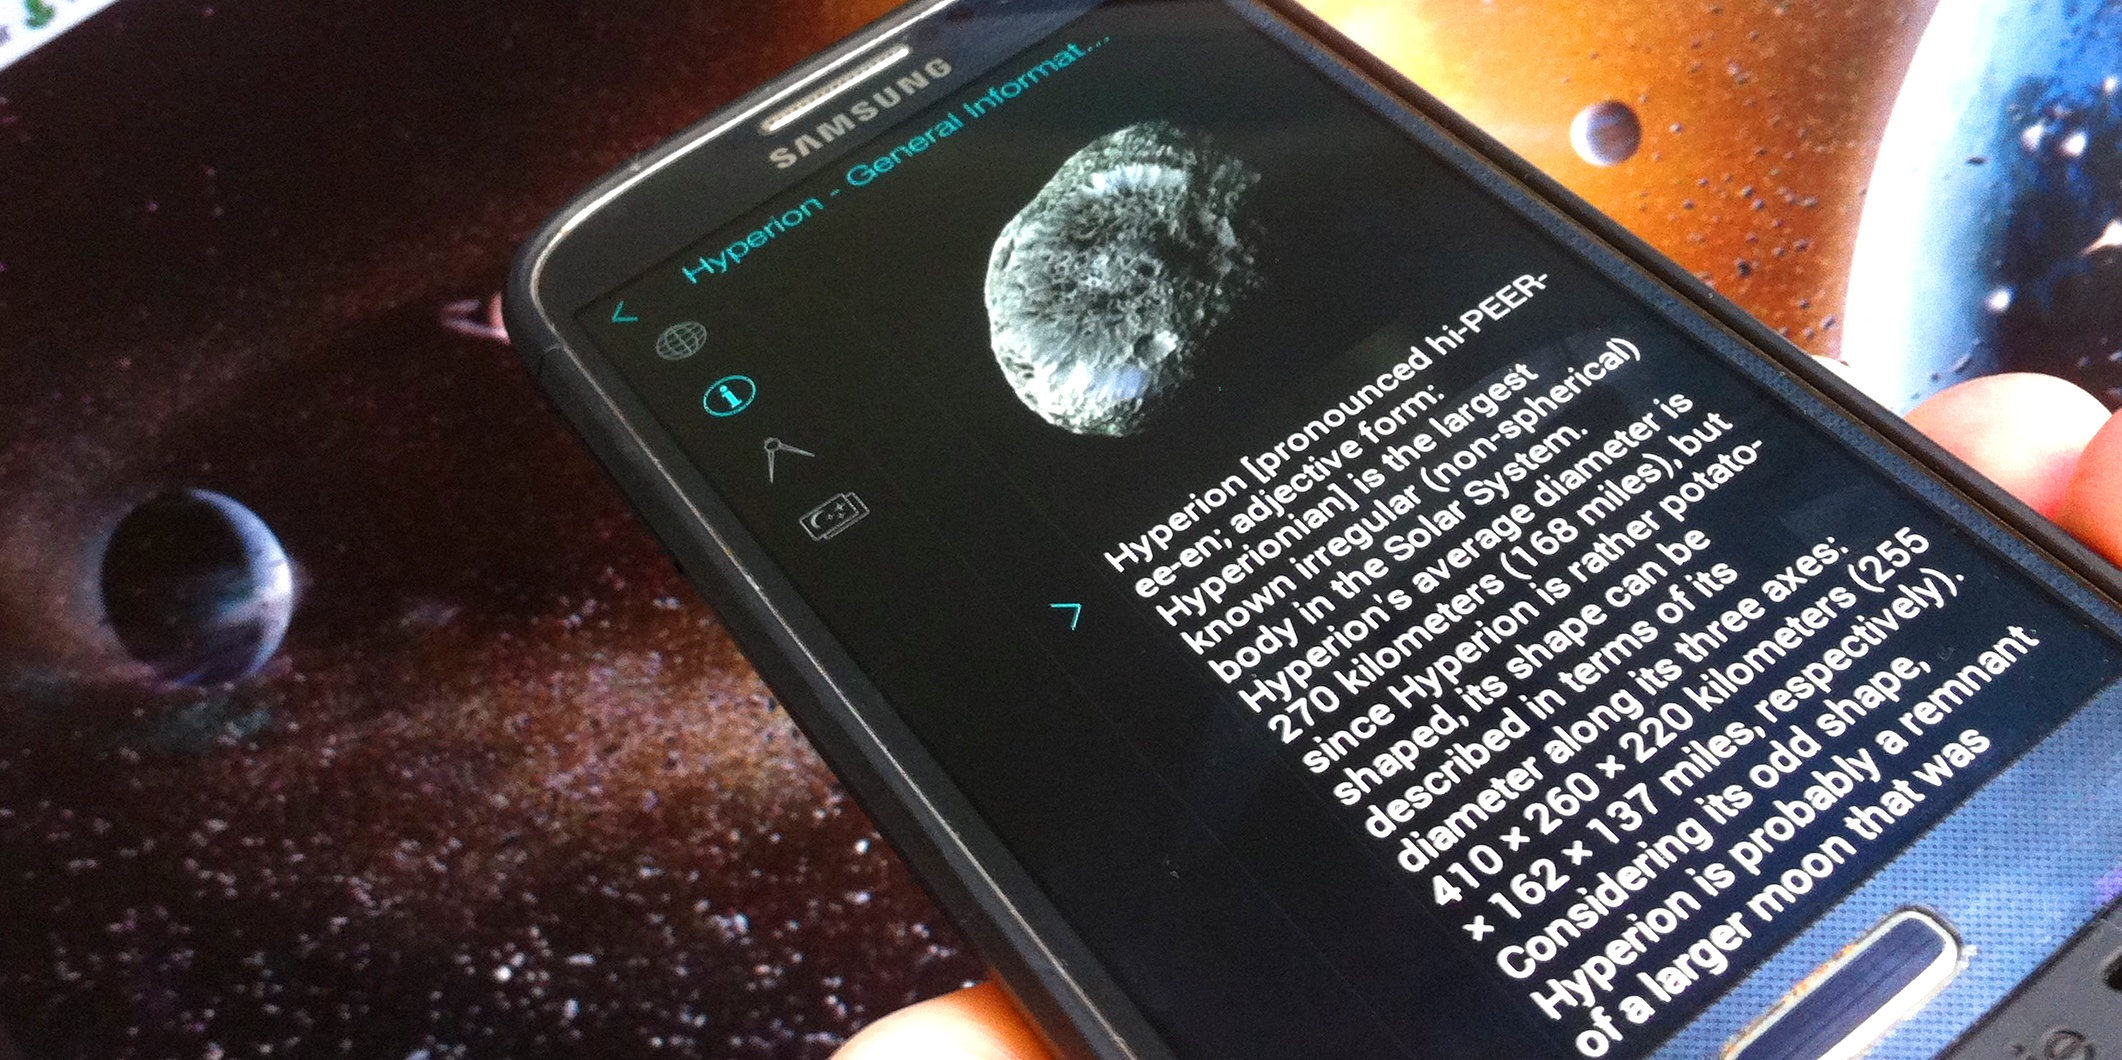 Solar Walk for Android Guides You Through Our Solar System